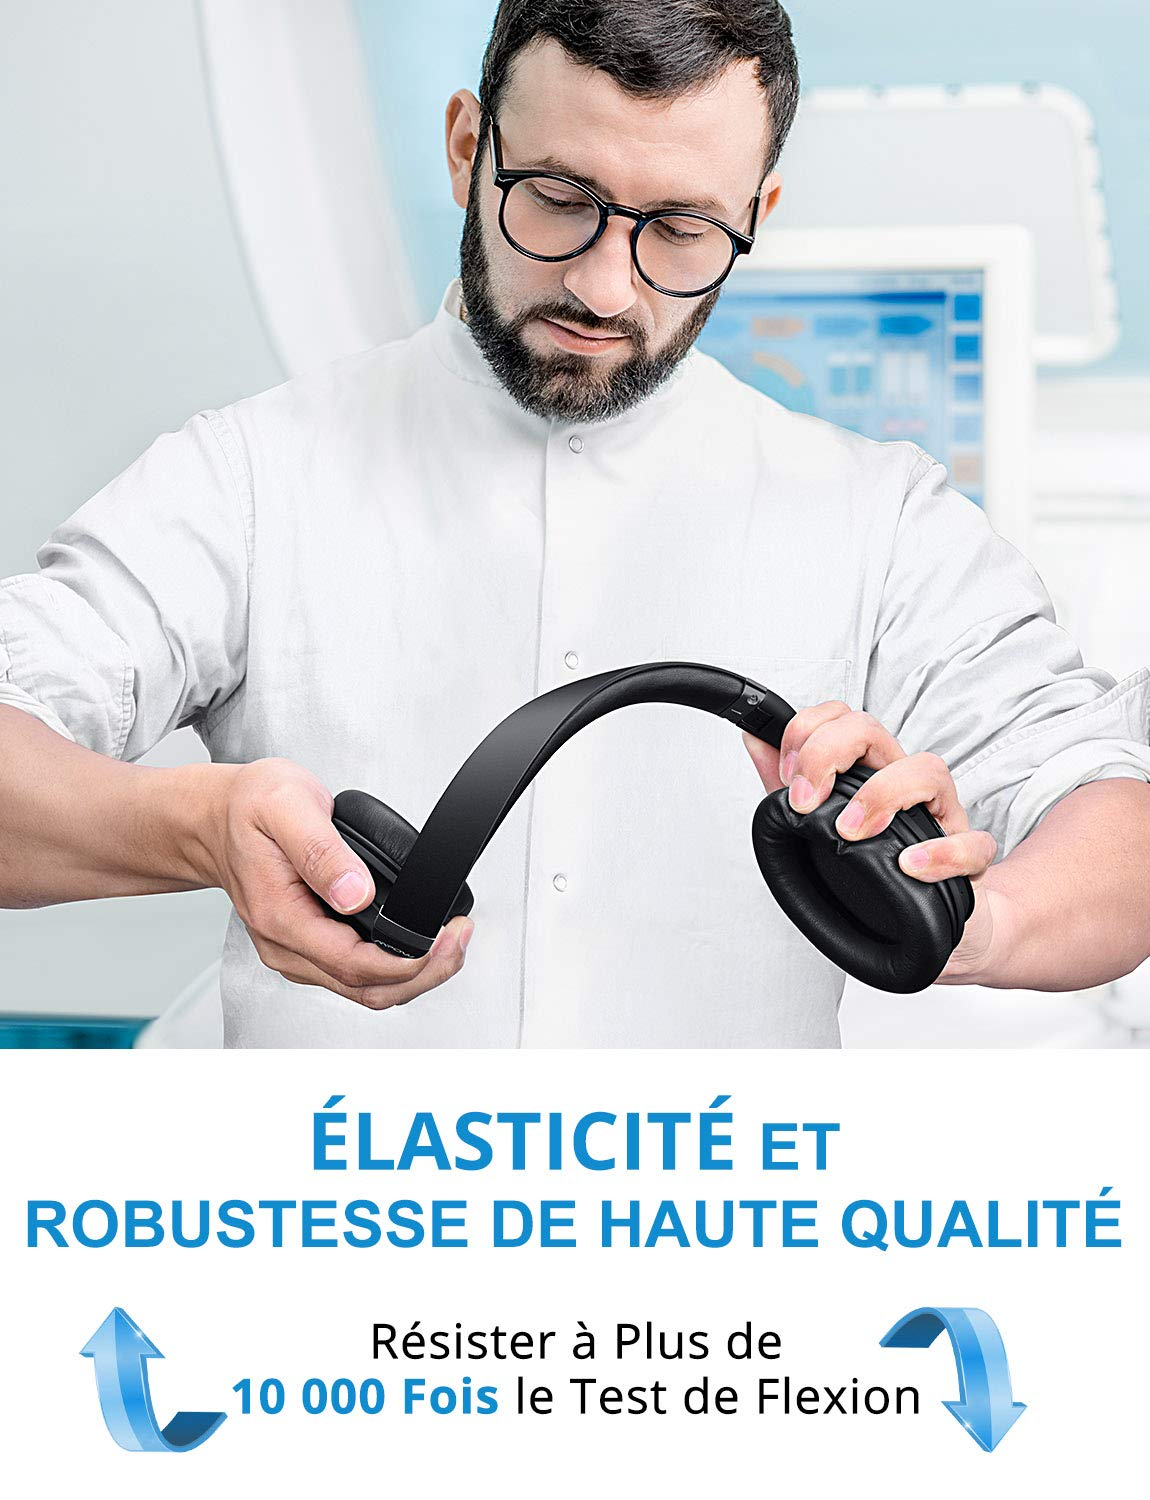 2-Argent Casque St/ér/éo sans Fil Haute Fid/élit/é Casque Reduction de Bruit Active Casque Bluetooth Annulation de Bruit Active sans Fil Casque Reduction Active Bruit Mpow H5 Annulation Active de Bruit